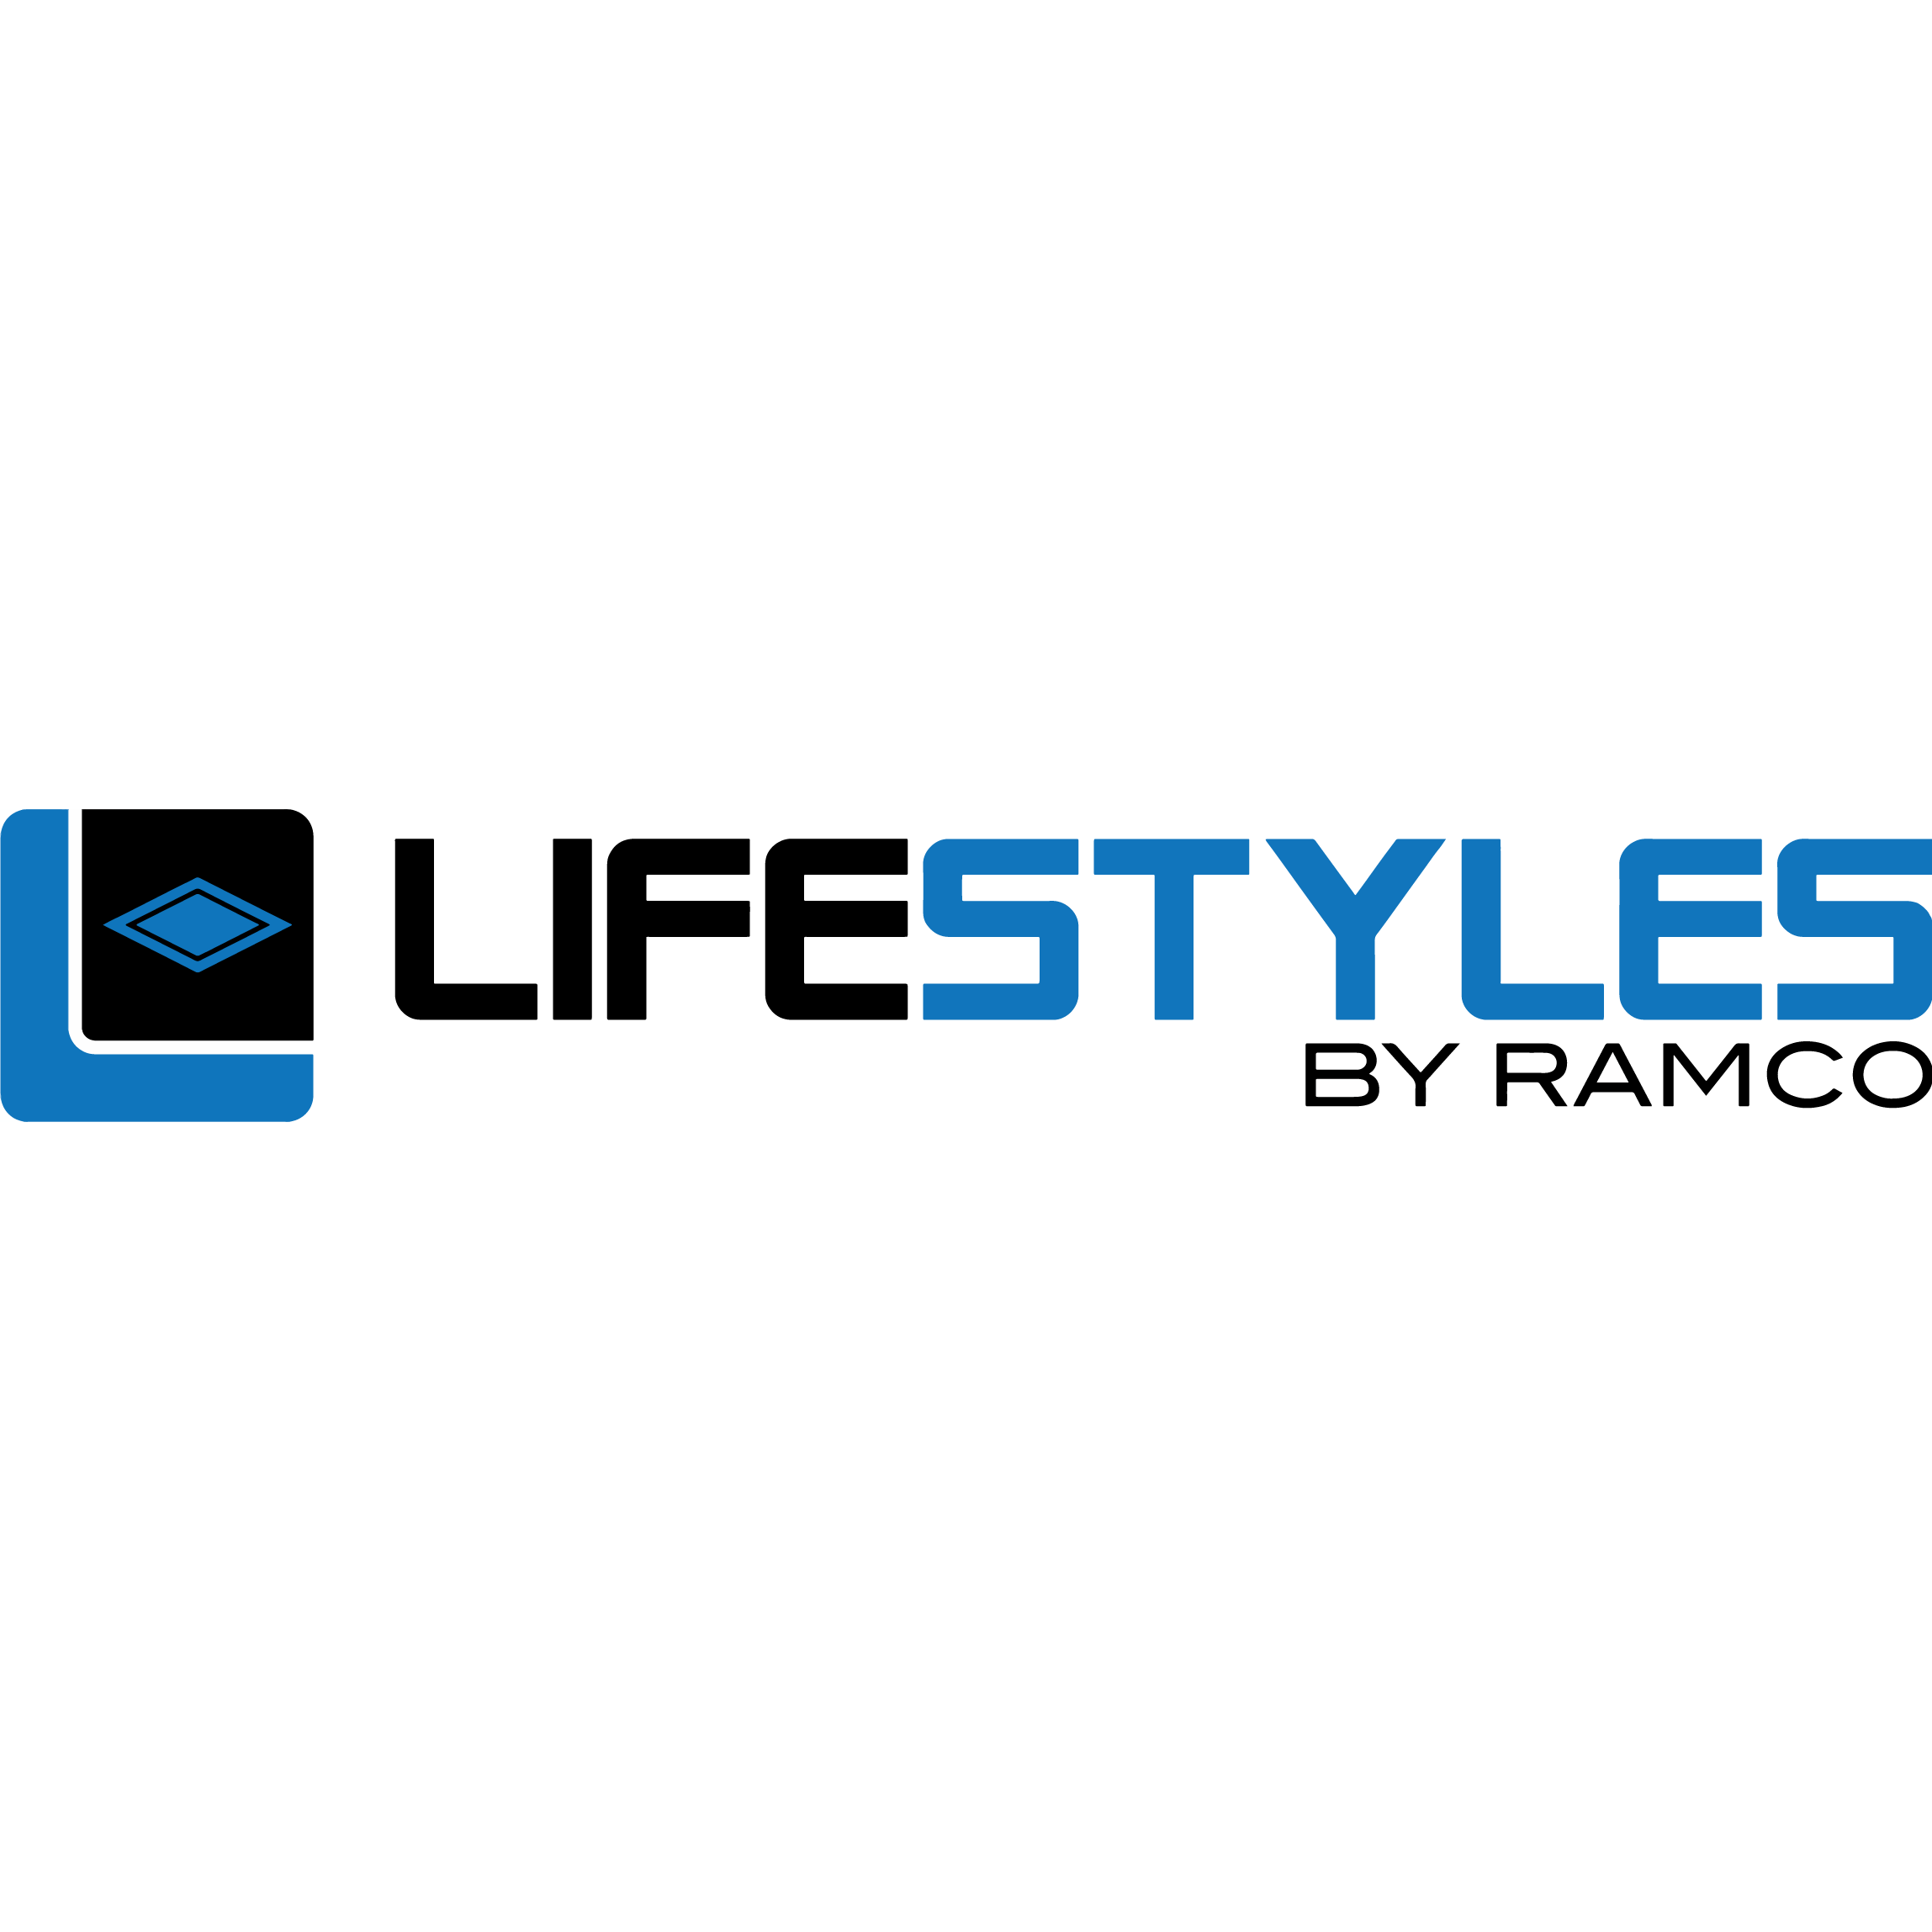 Lifestyles By Ramco